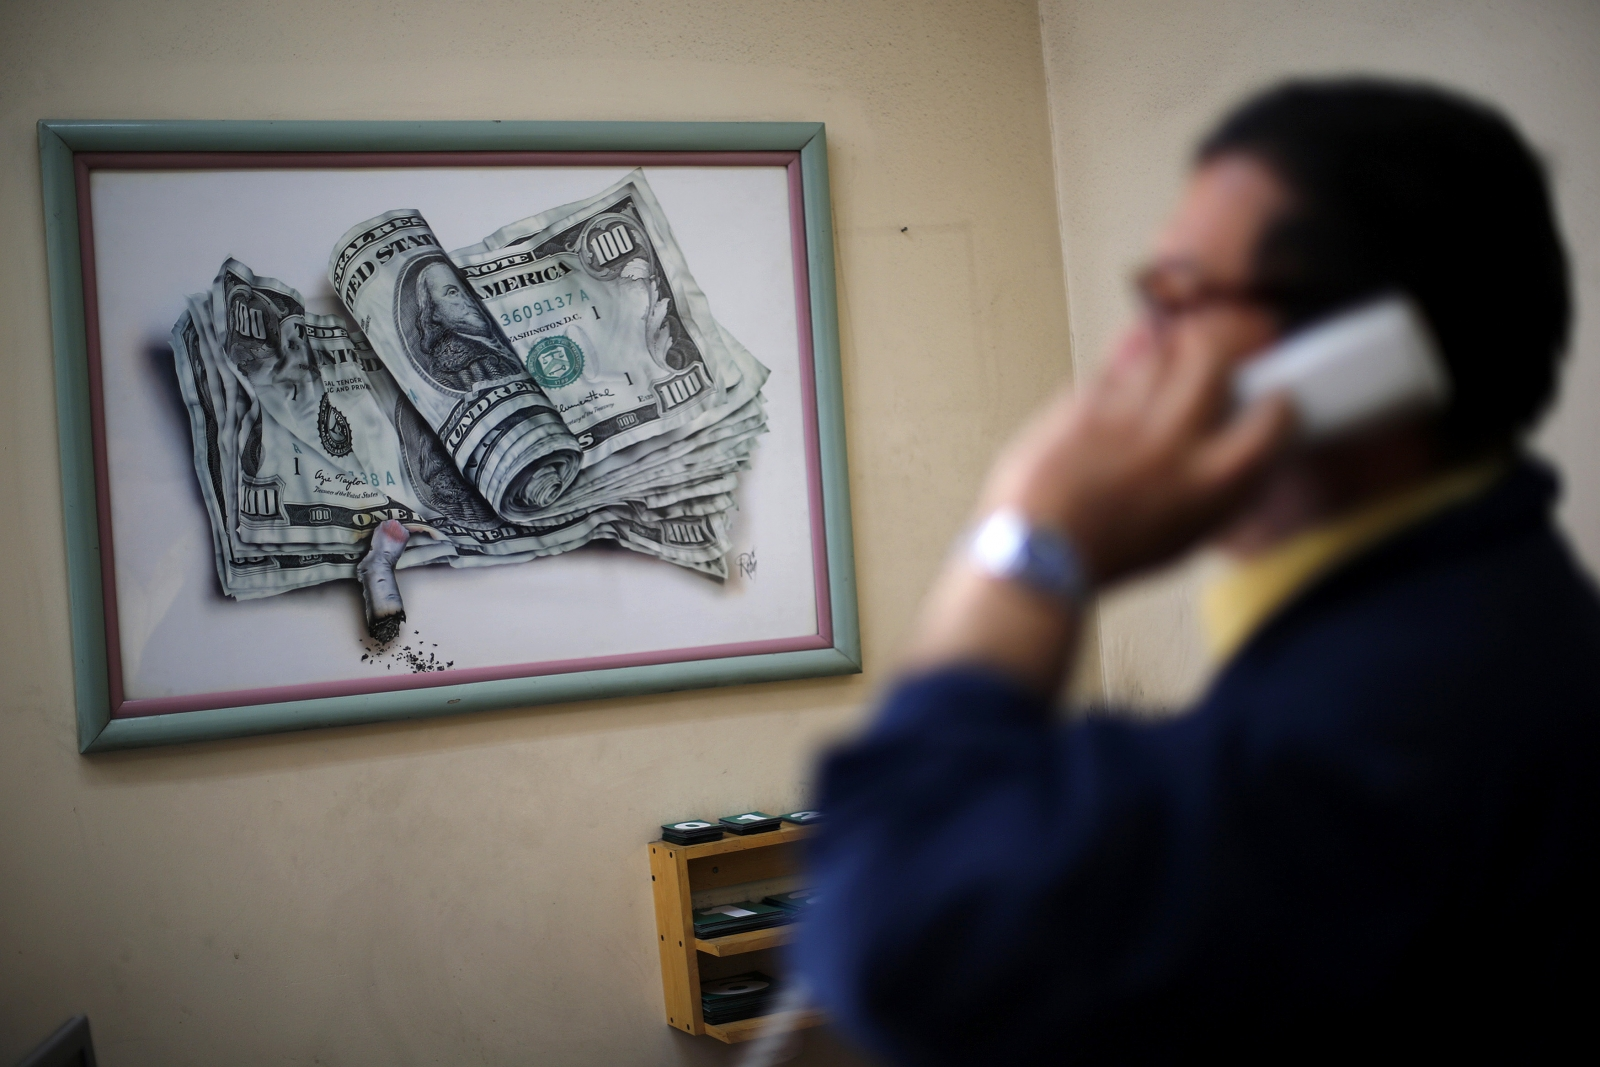 Telephone scams are on the rise in the UK